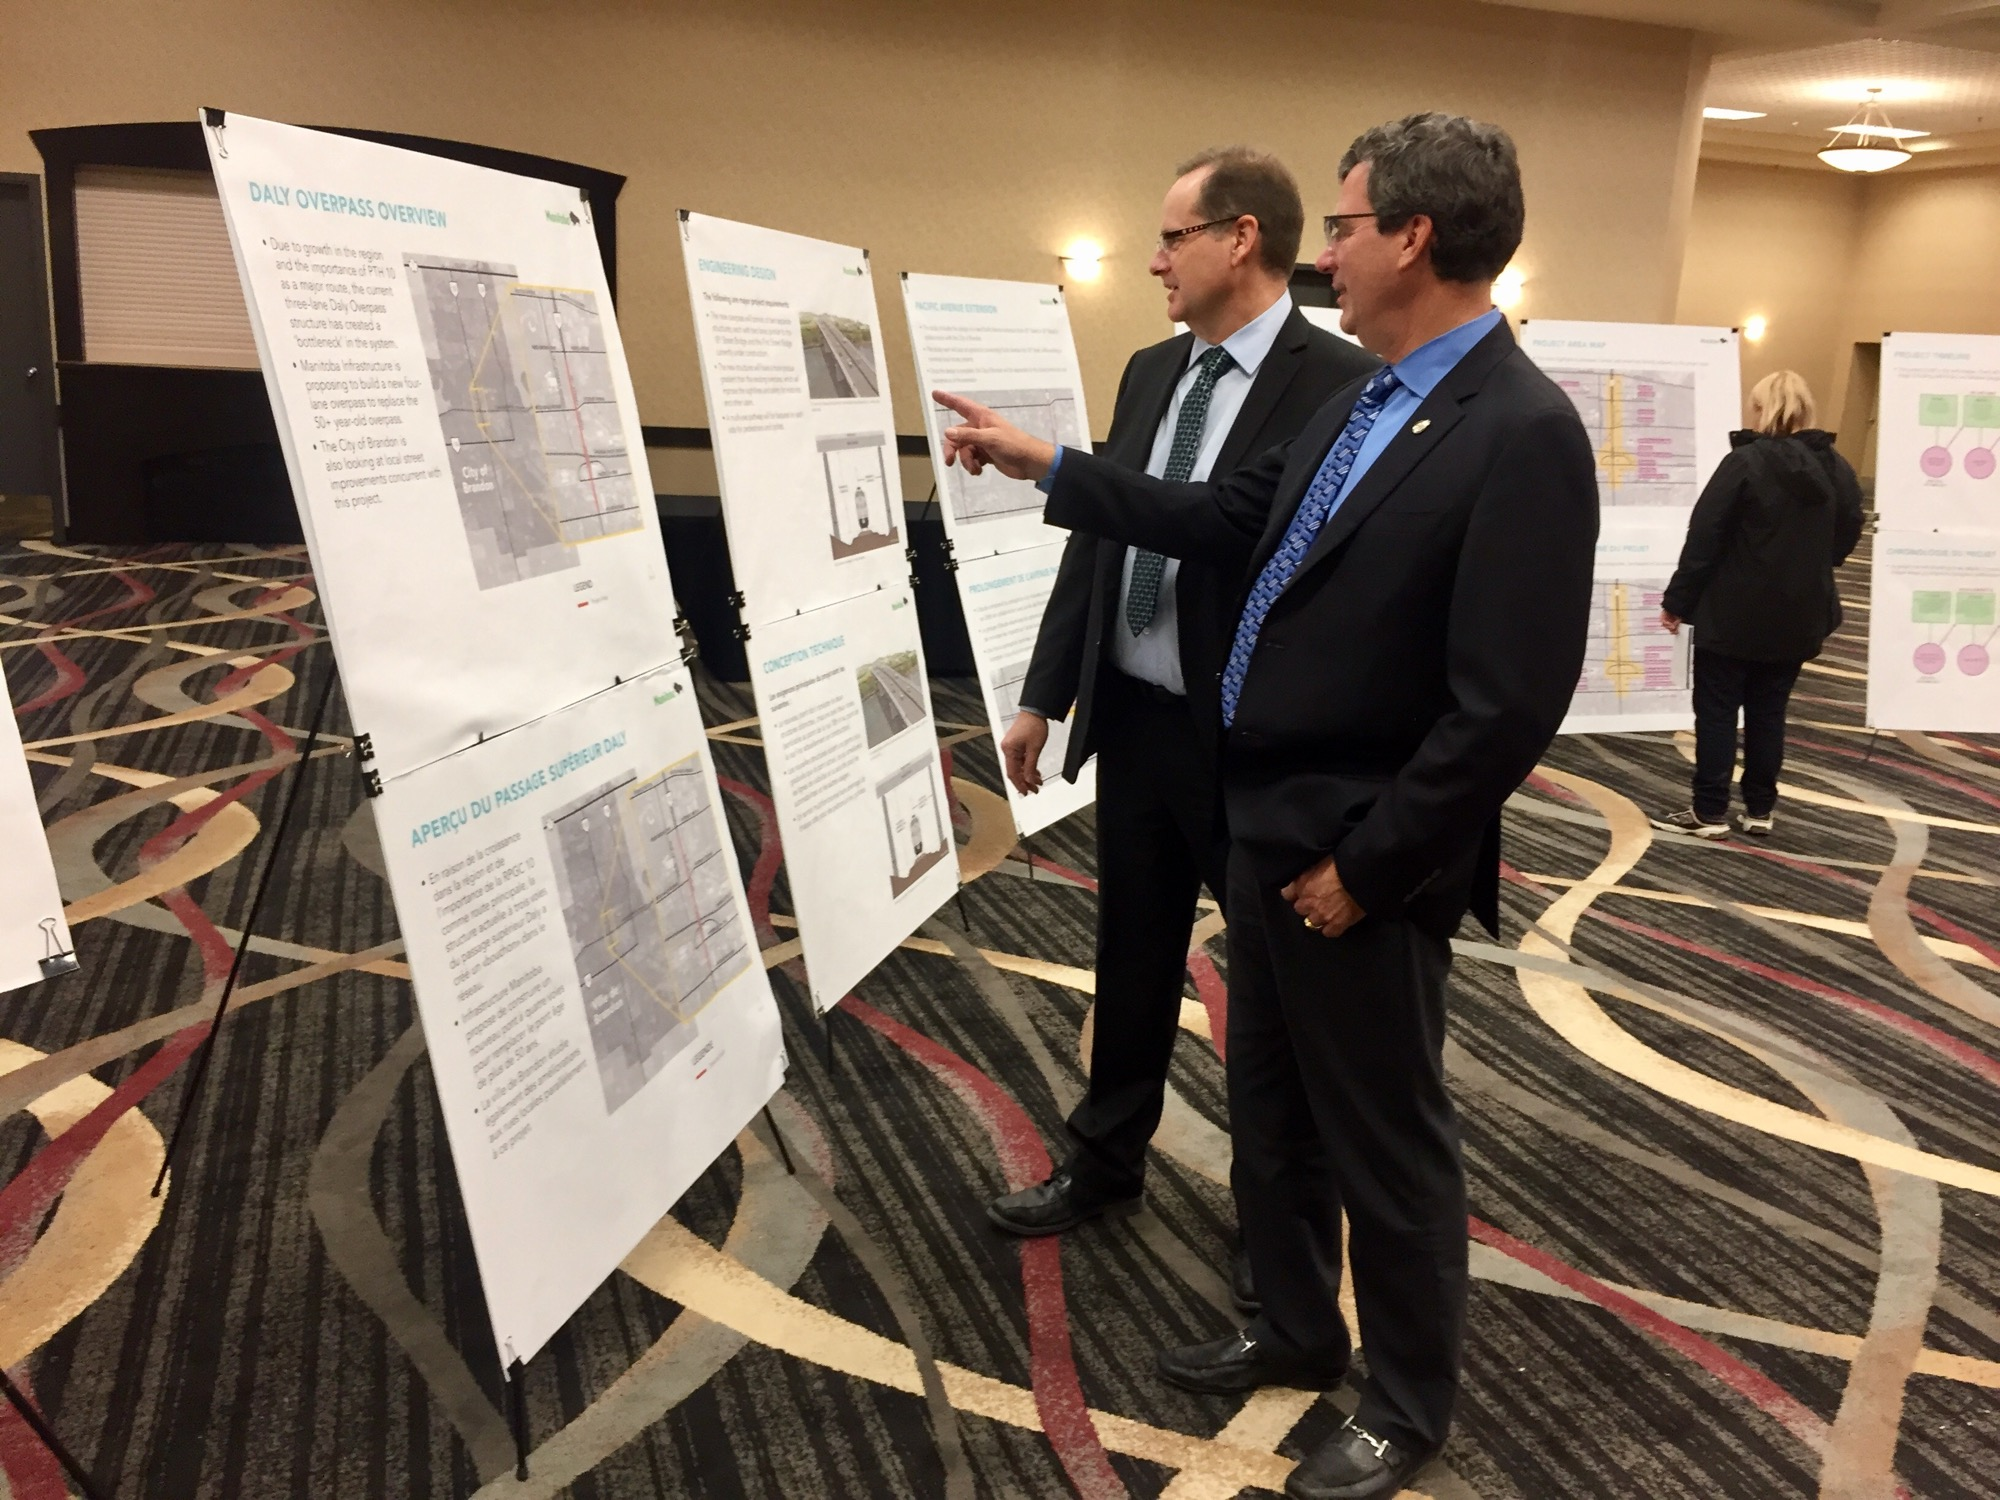 Four options for the new Daly Overpass were presented at a public open house held Tuesday. JILLIAN AUSTIN/THE BRANDON SUN